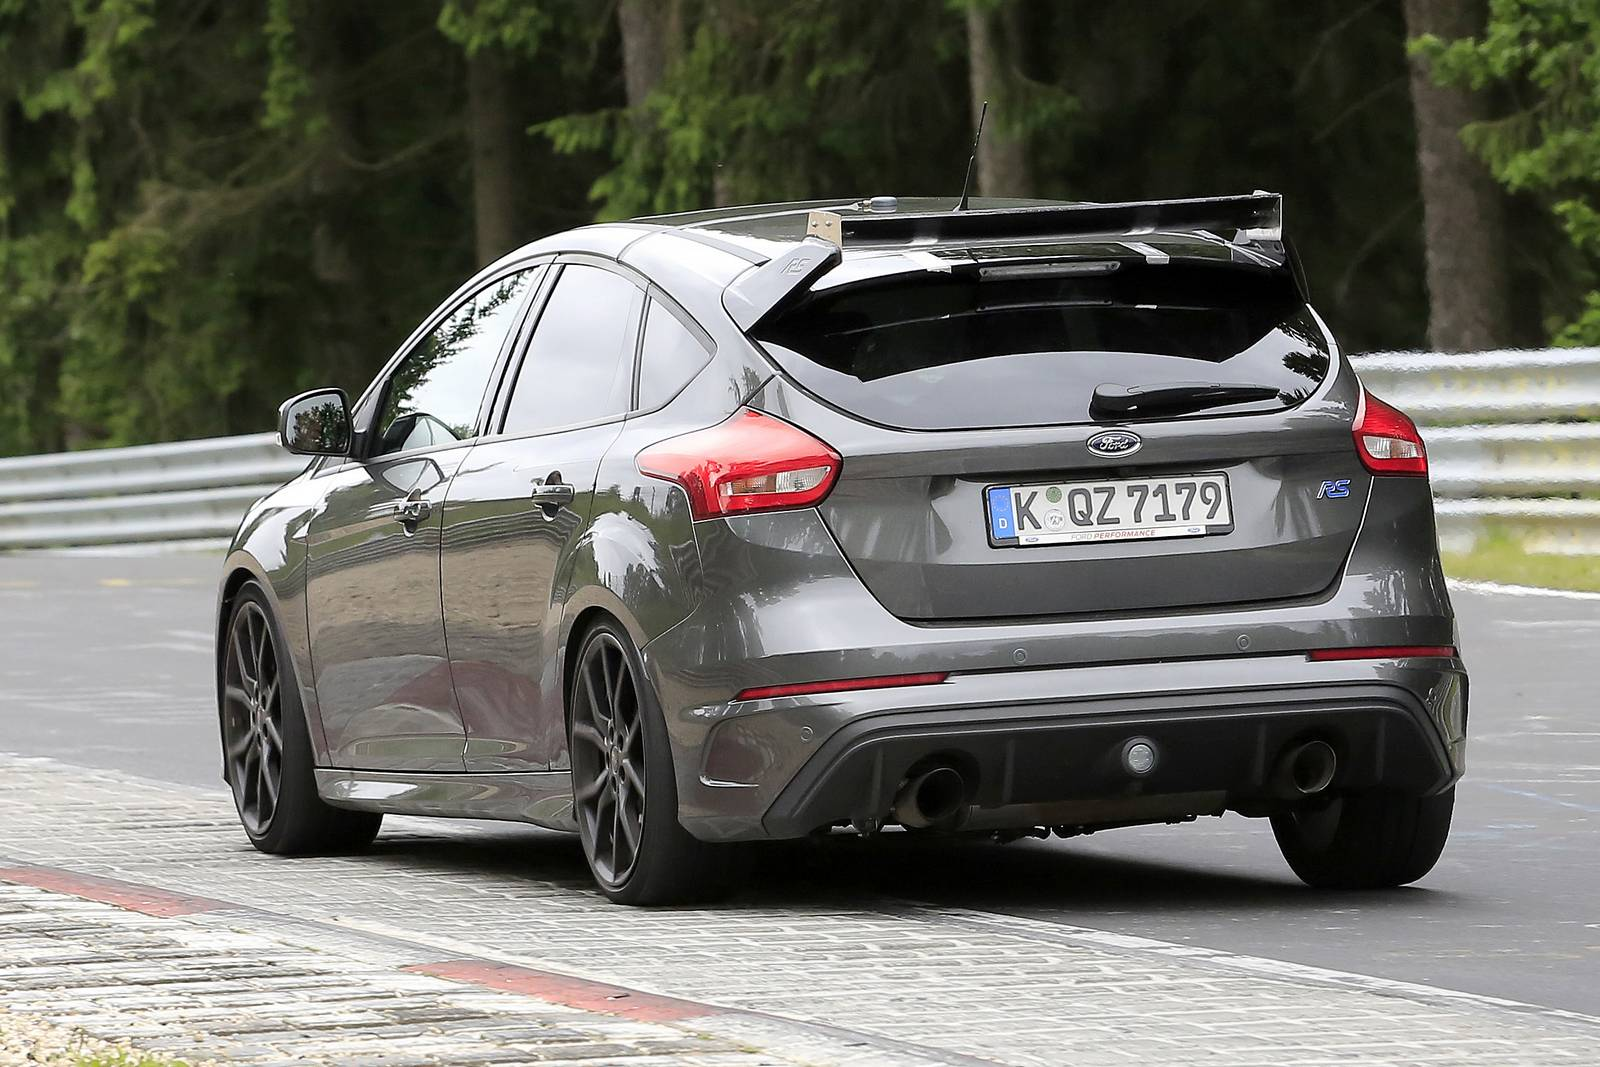 Ford Focus Rs Grey An Even More Hardcore Ford Focus Rs500 Latest Spy Shots